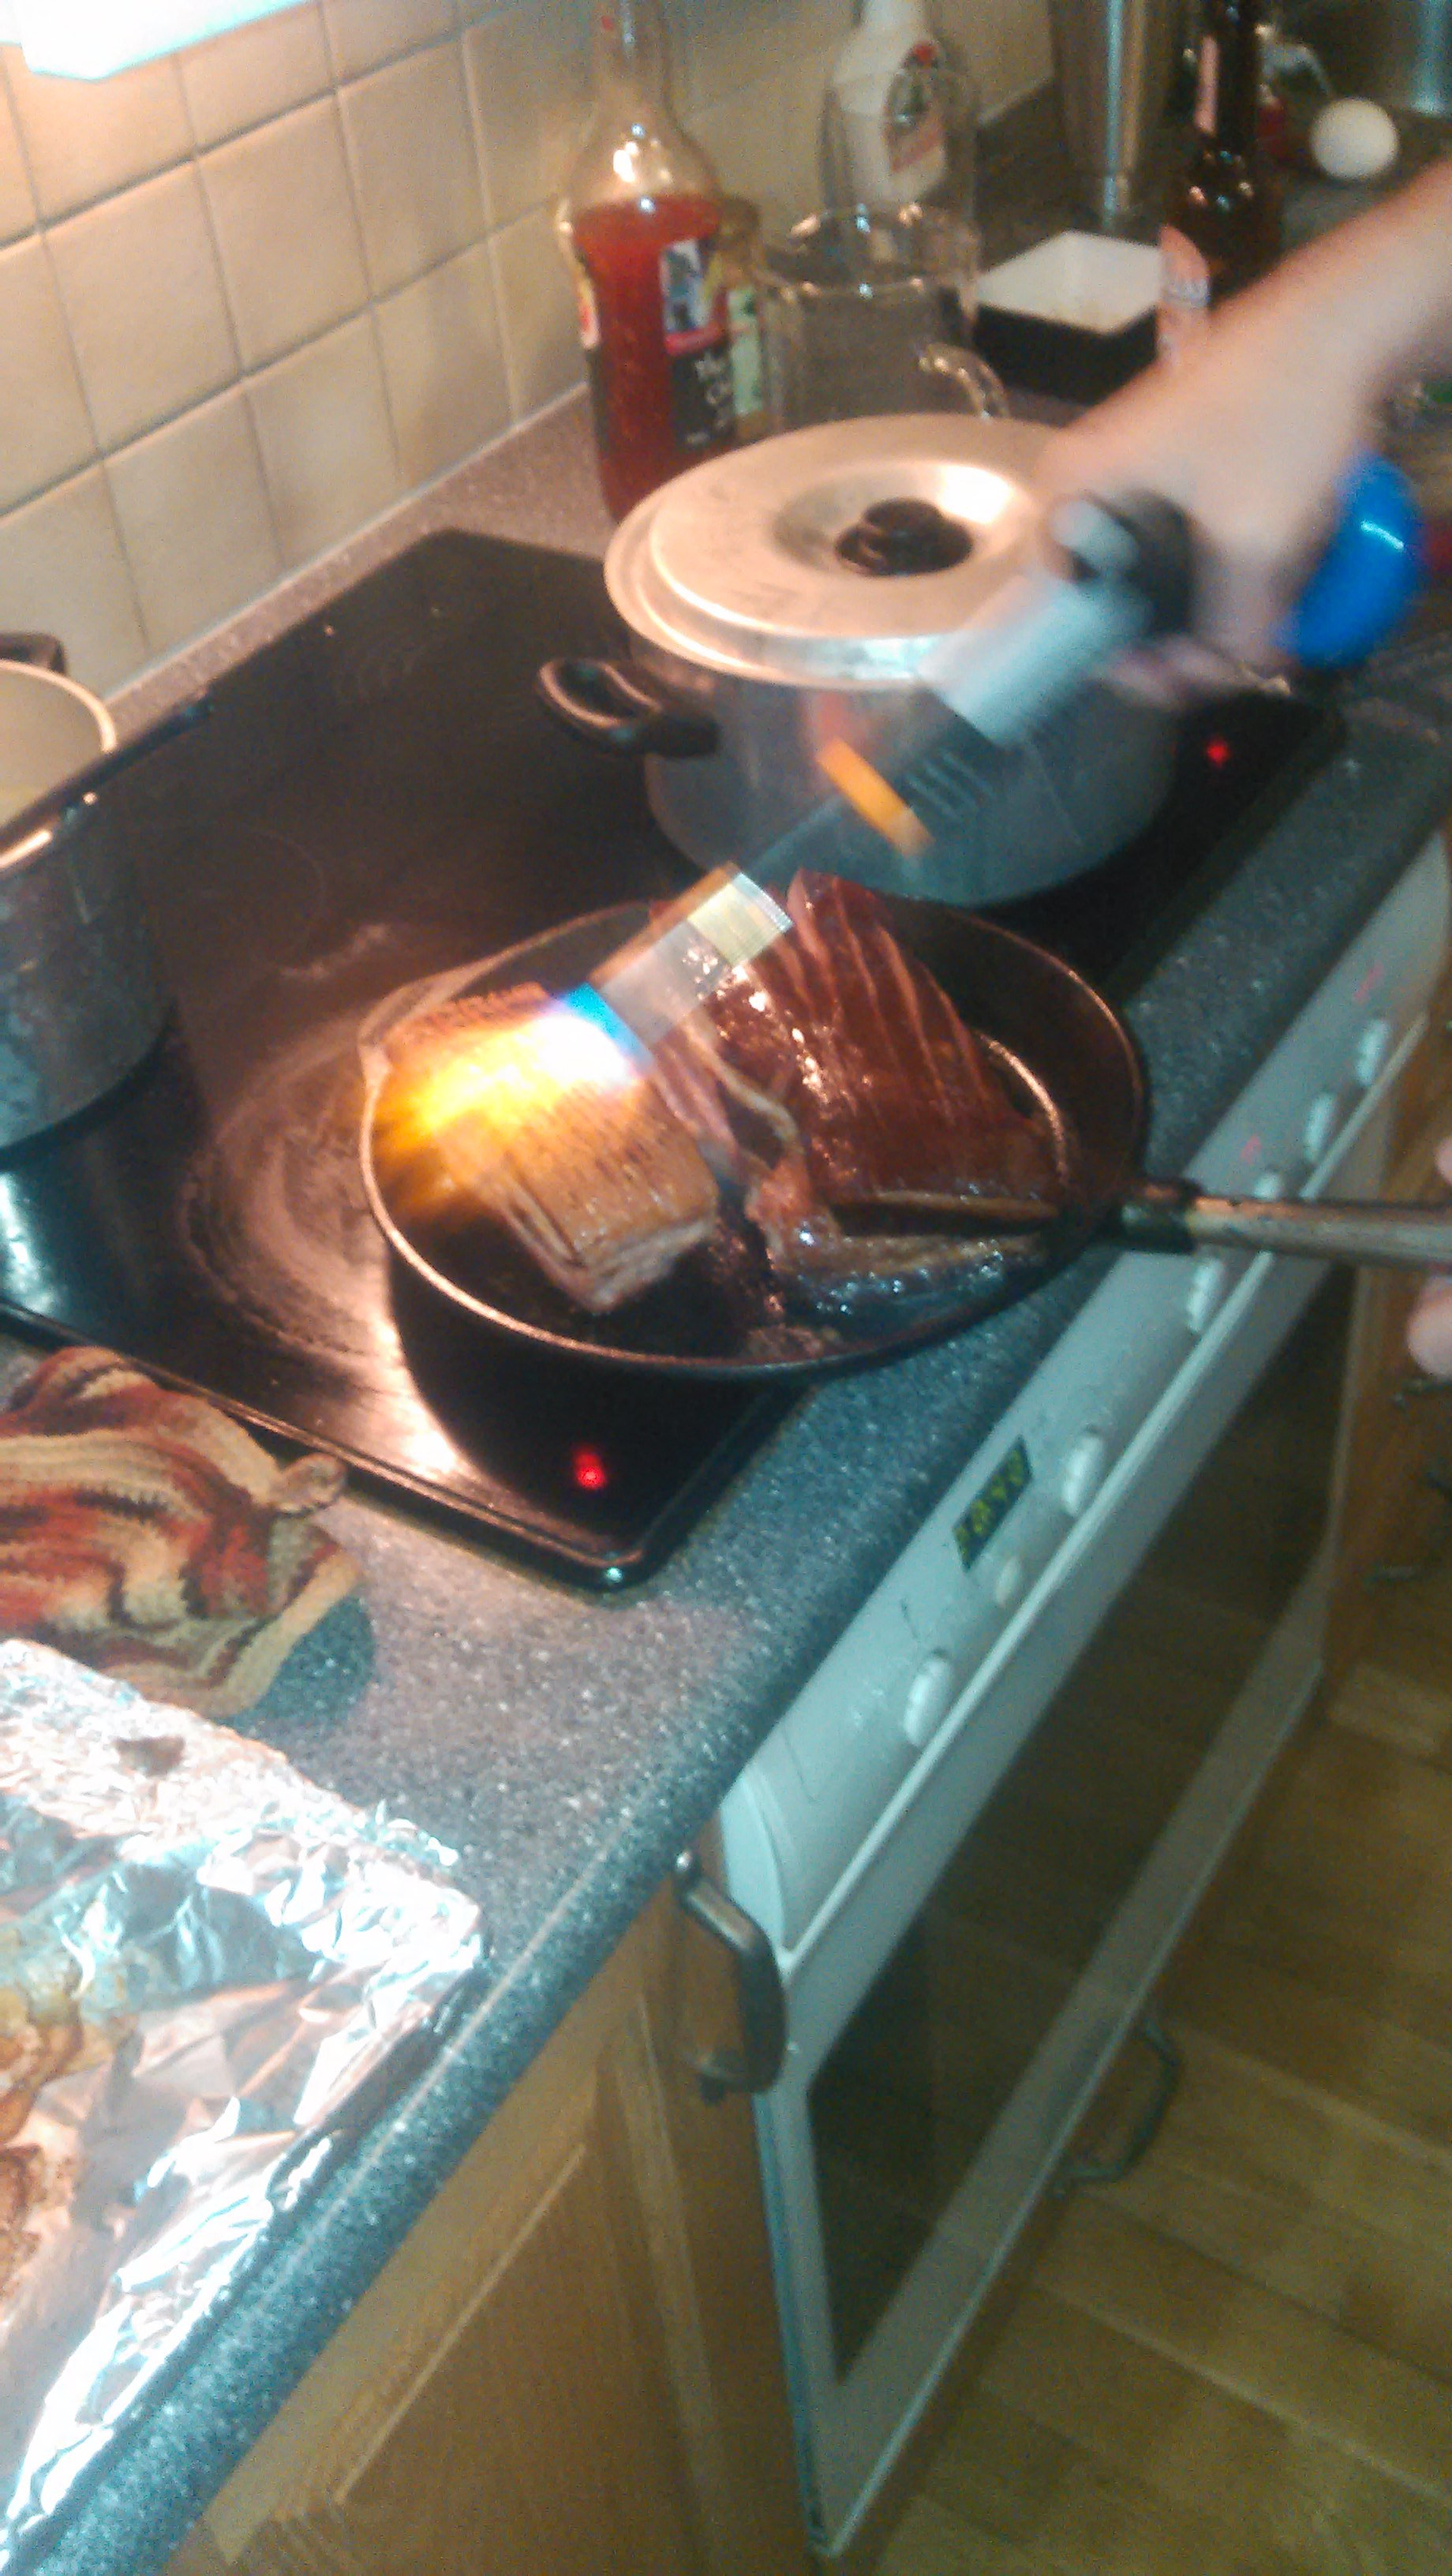 Crisping the bacon sous-vide